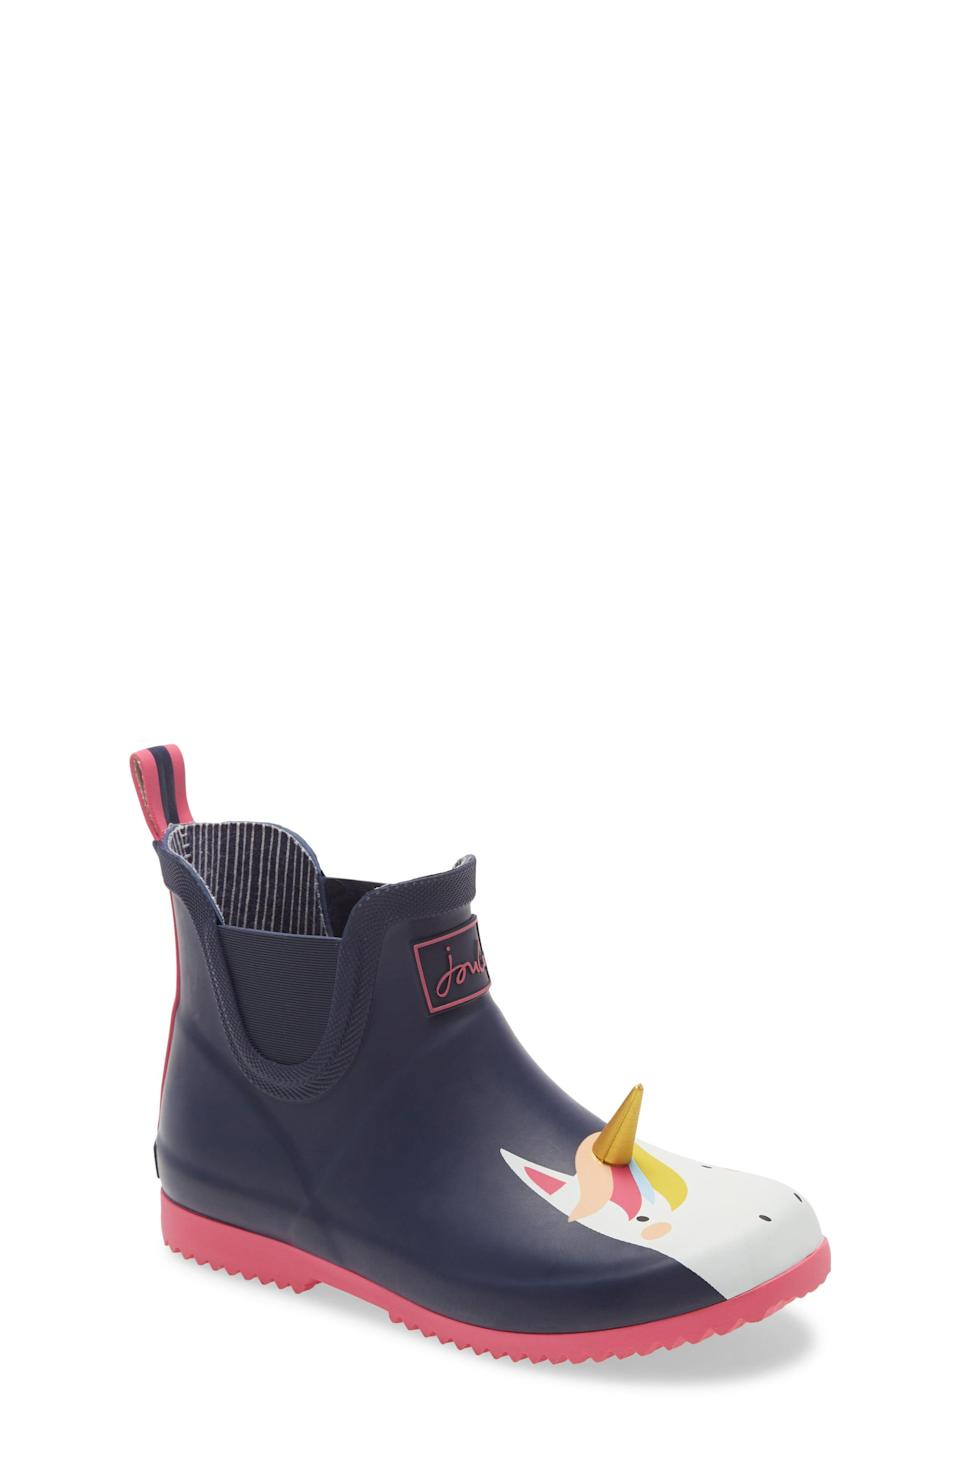 """<p><strong>JOULES</strong></p><p>nordstrom.com</p><p><strong>$39.95</strong></p><p><a href=""""https://go.redirectingat.com?id=74968X1596630&url=https%3A%2F%2Fwww.nordstrom.com%2Fs%2Fjoules-wellibob-waterproof-short-rain-boot-toddler-little-kid-big-kid%2F5748163&sref=https%3A%2F%2Fwww.countryliving.com%2Fshopping%2Fgifts%2Fg33960948%2Fbest-unicorn-gifts%2F"""" rel=""""nofollow noopener"""" target=""""_blank"""" data-ylk=""""slk:Shop Now"""" class=""""link rapid-noclick-resp"""">Shop Now</a></p><p>You can't be gloomy on a rainy day with these fun and functional wellies!</p>"""